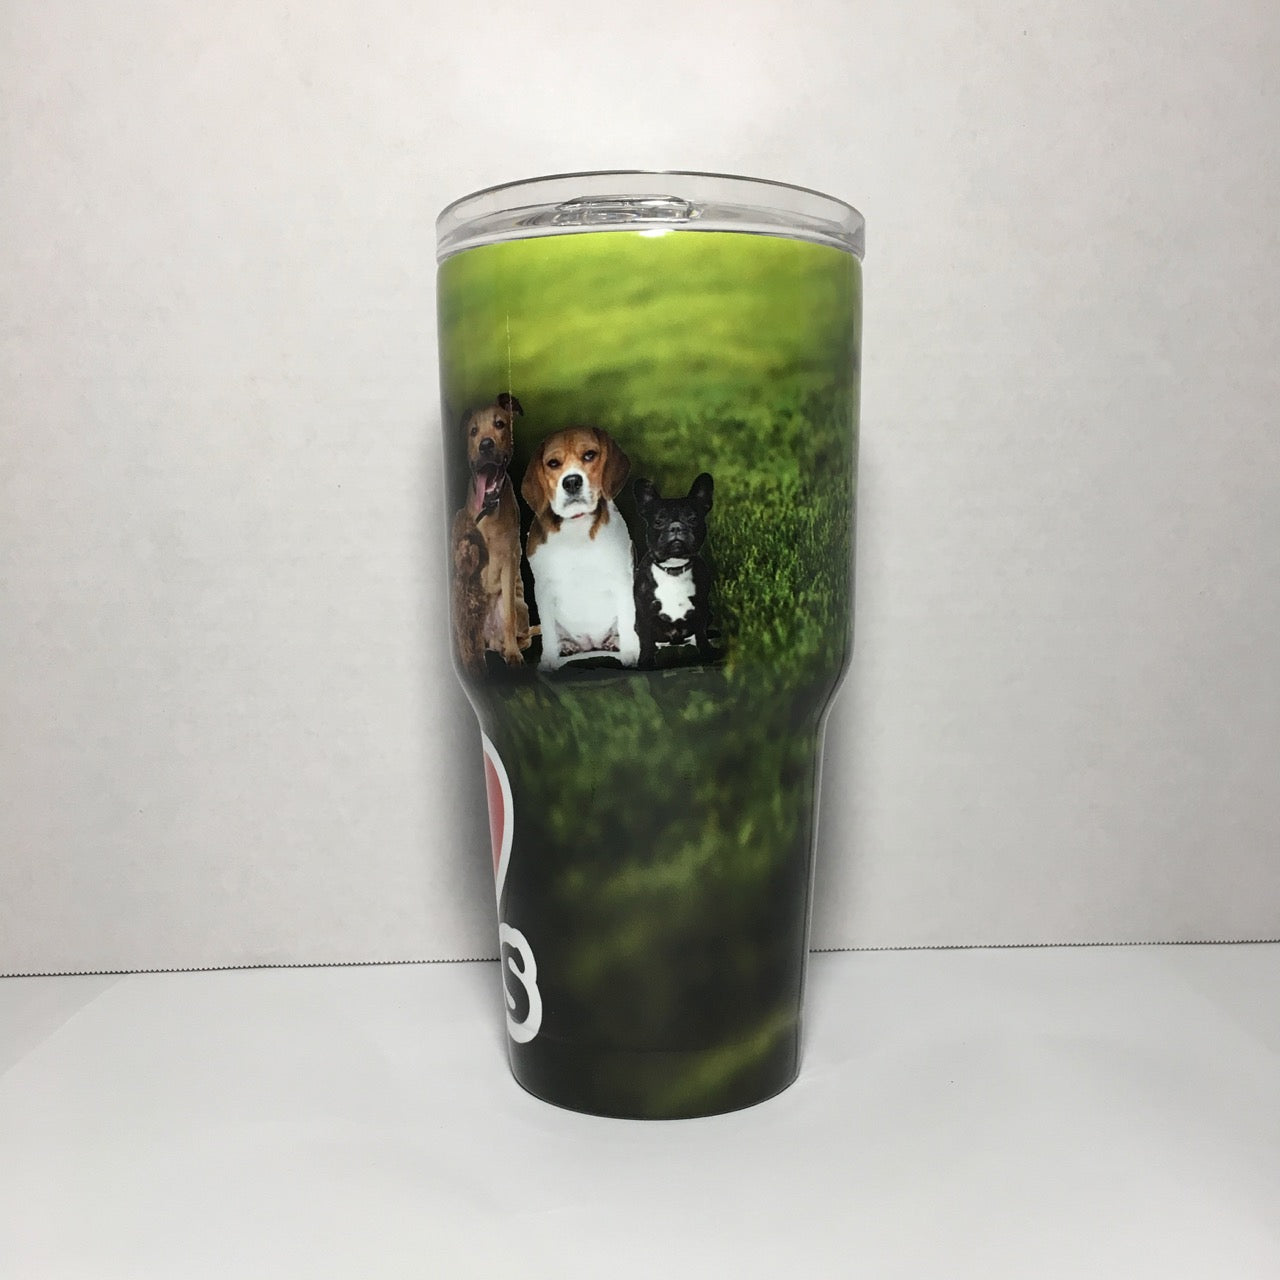 I Love Dogs Tumbler Personalized Tumbler, Custom 30oz Be Seen Designs Tumbler Fully Wrap